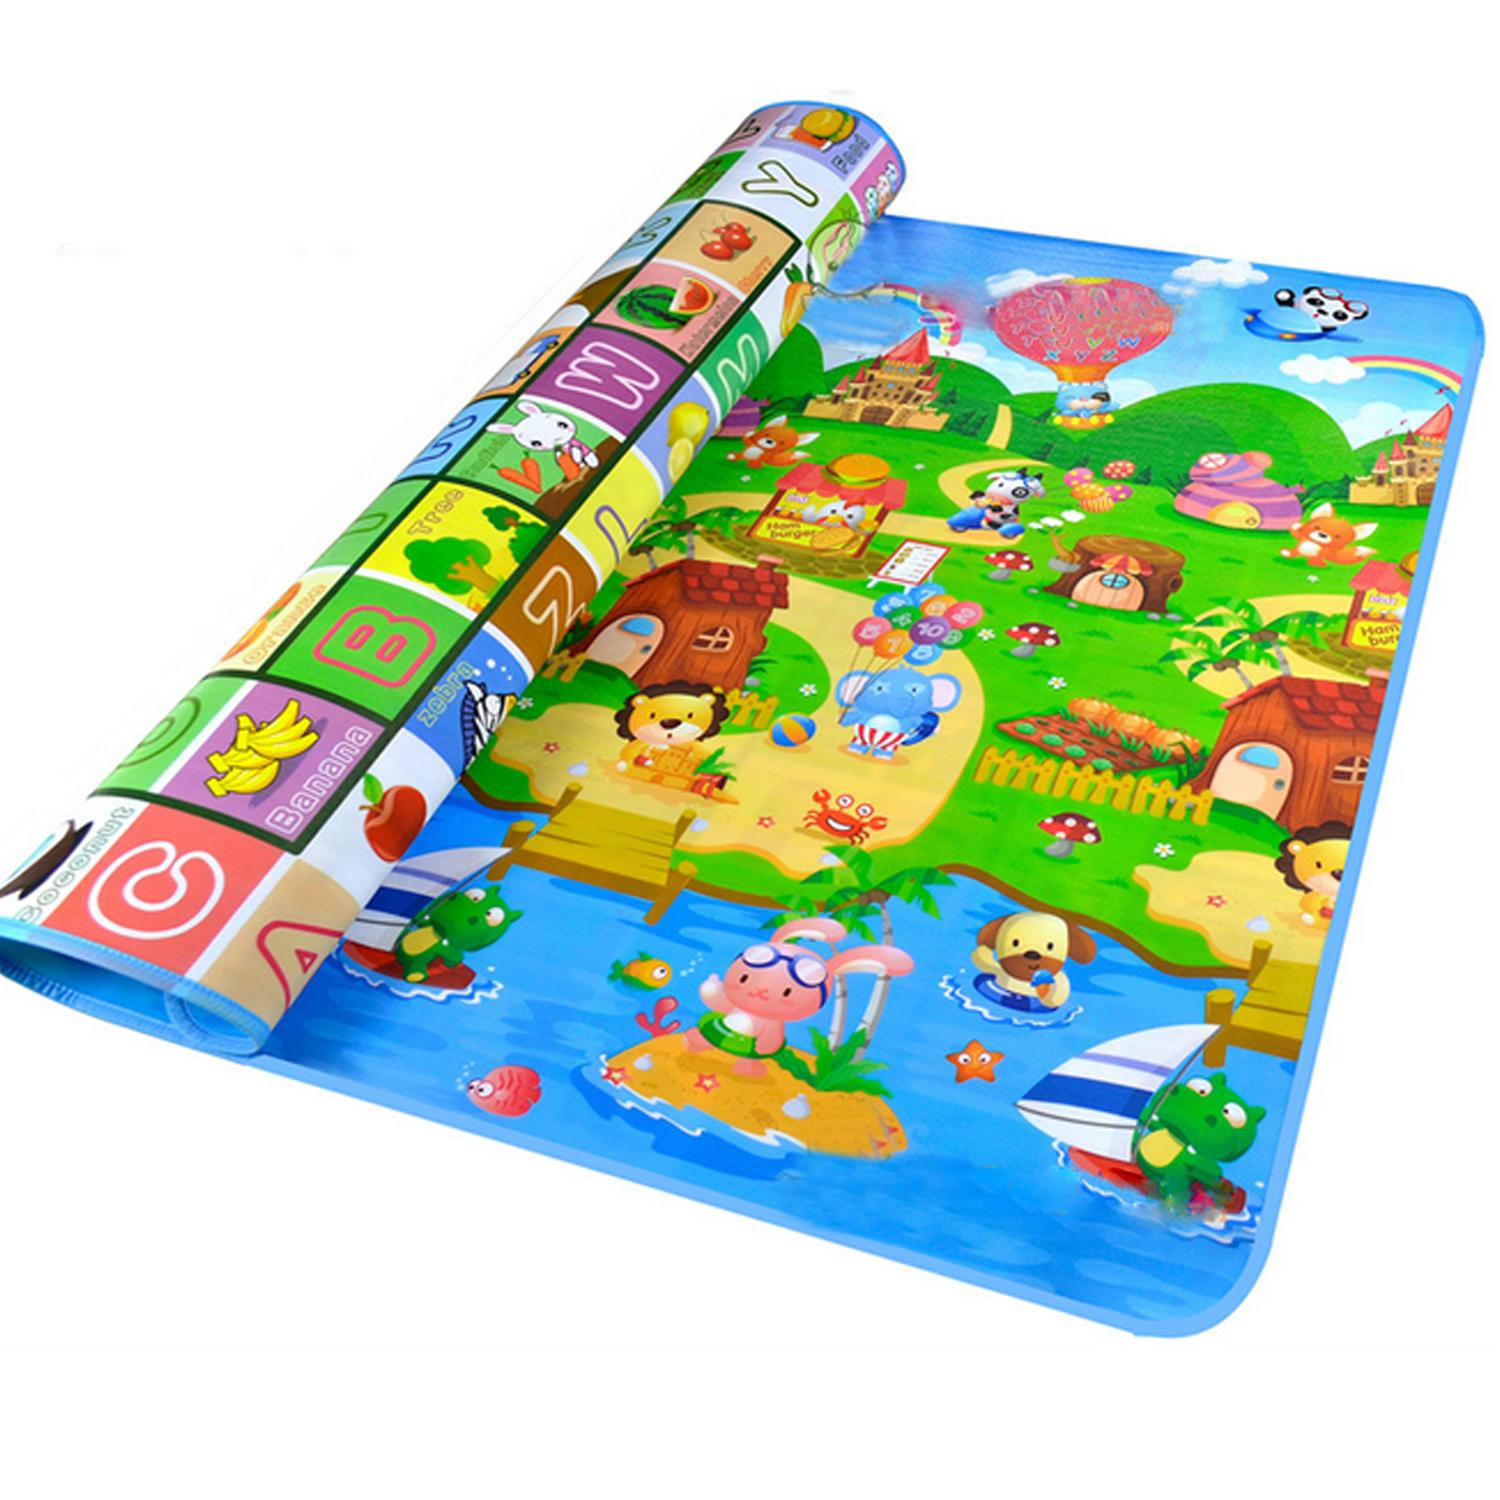 Double Sides Non-slip Waterproof Fruit Animals Letter Baby Kid Care Crawling Floor Play Game